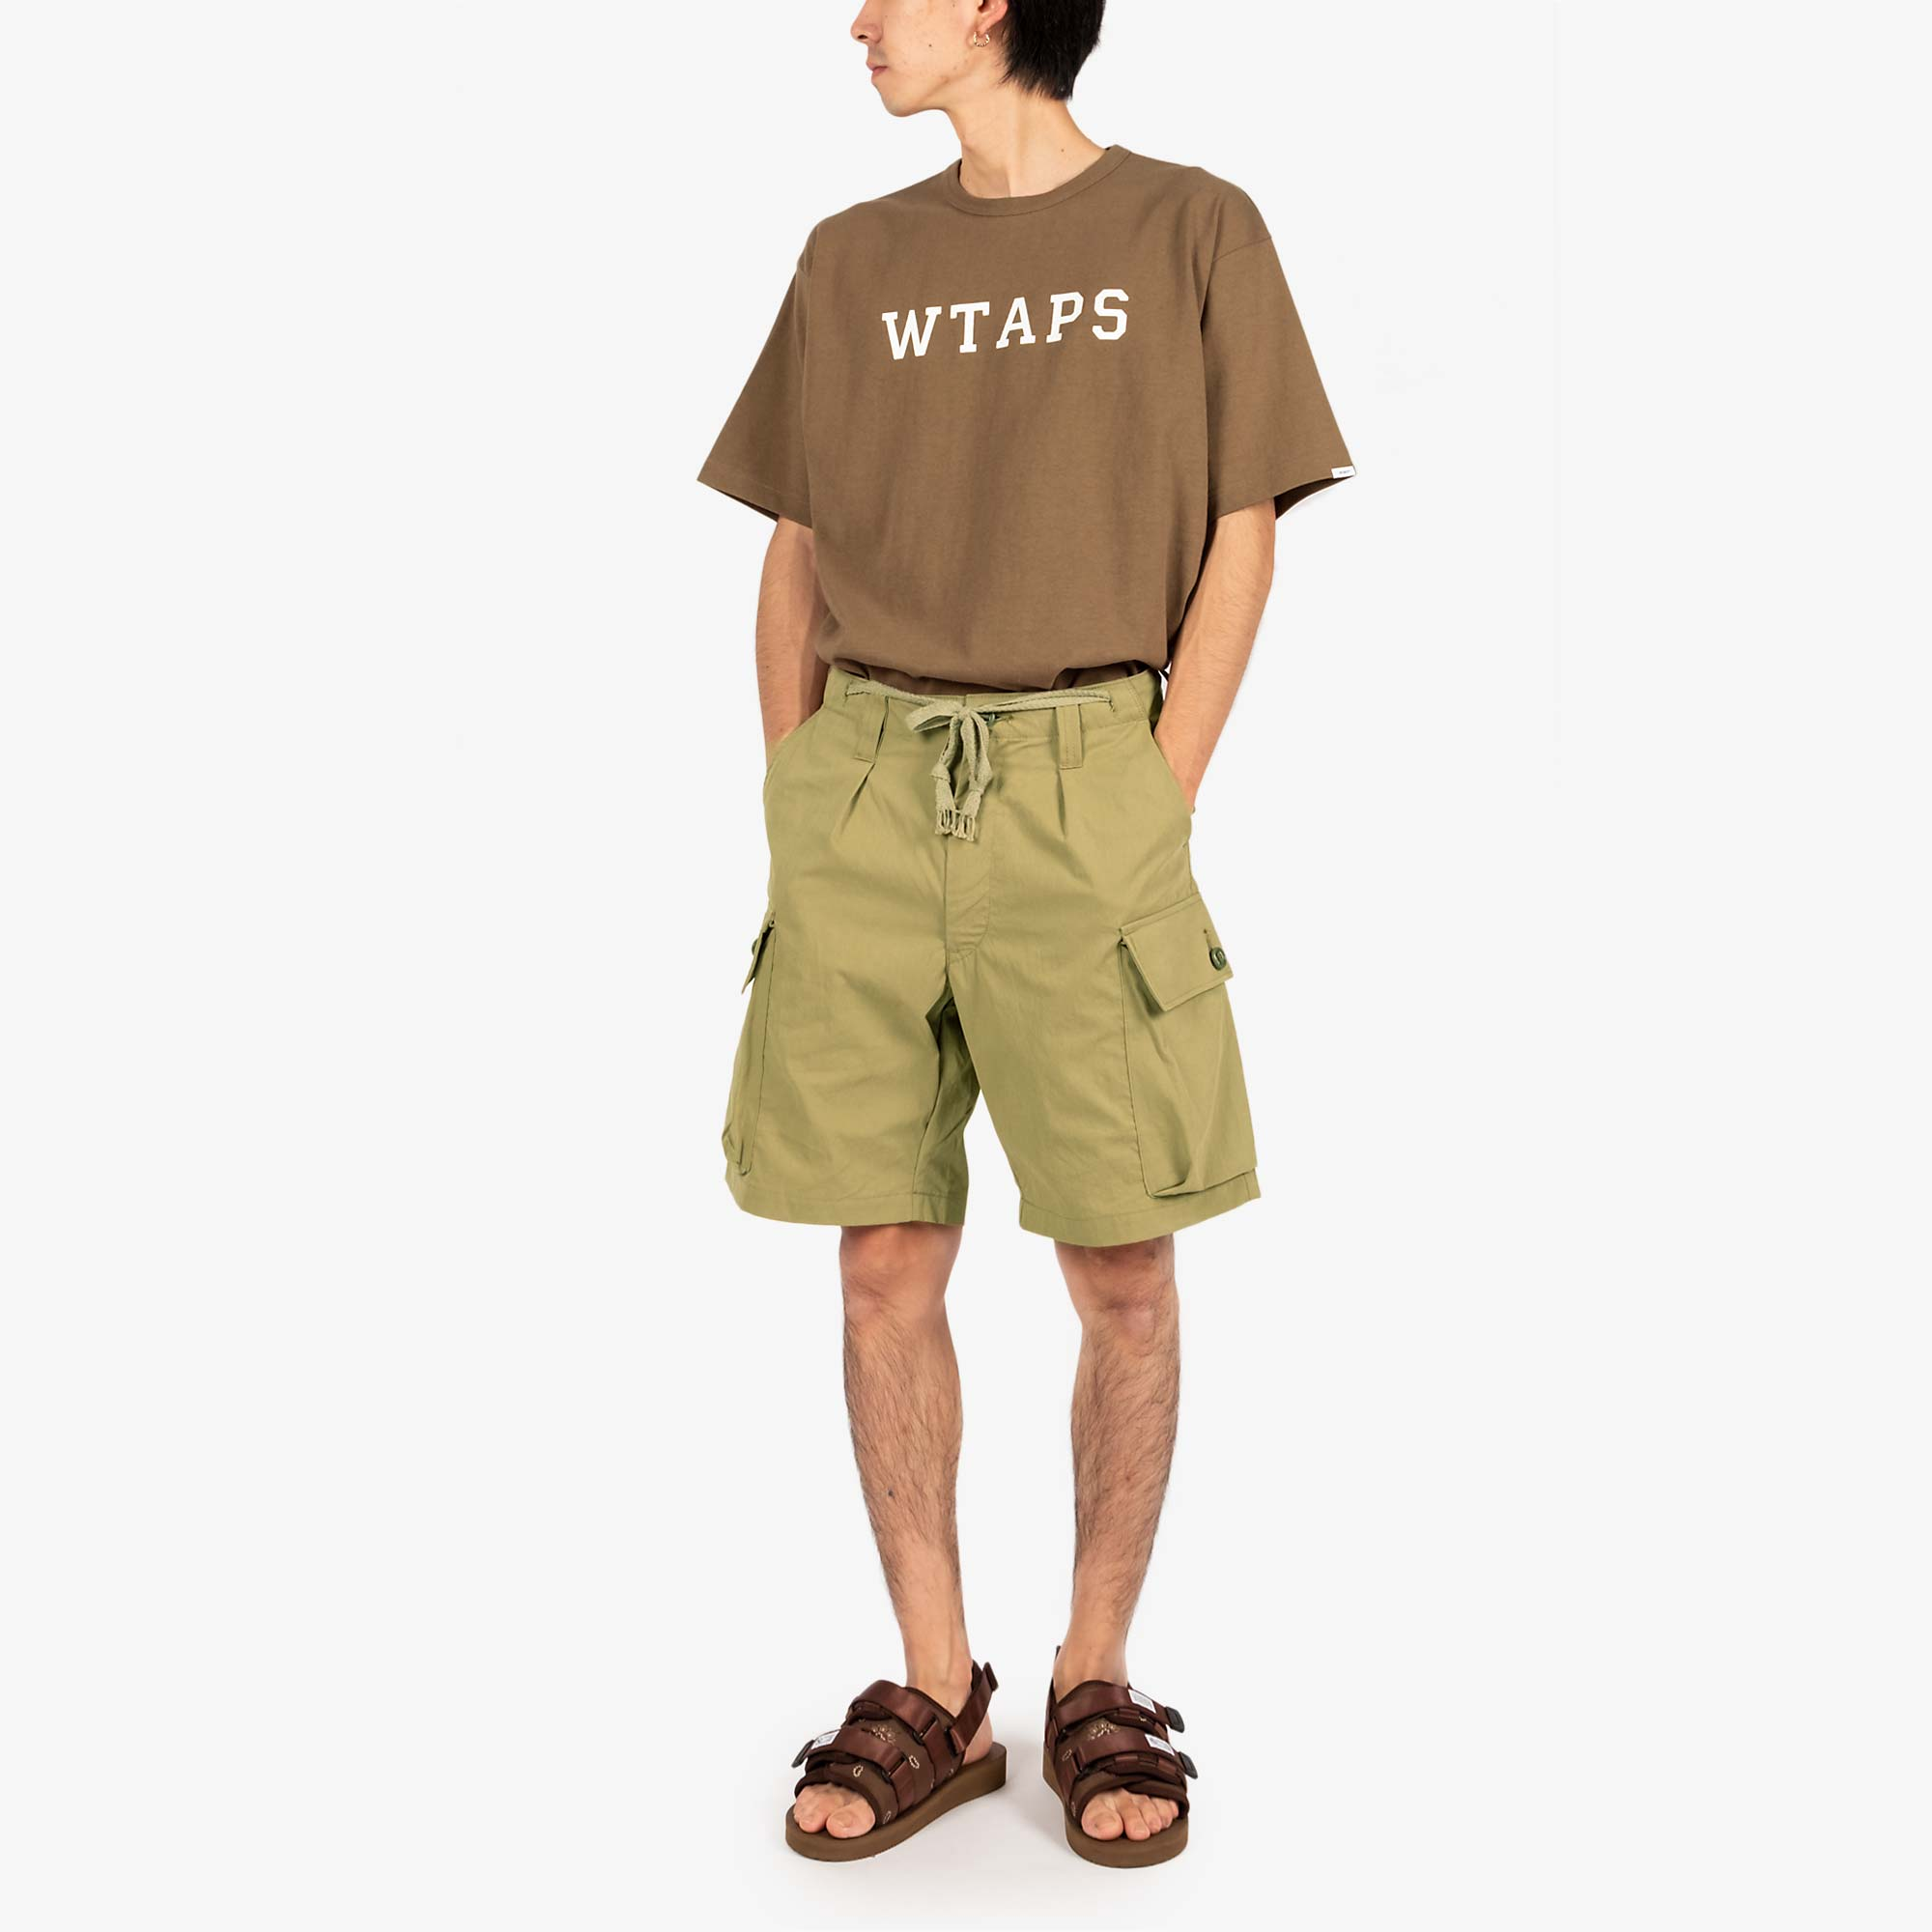 WTAPS Jungle Country Nyco Shorts - Olive Drab 2